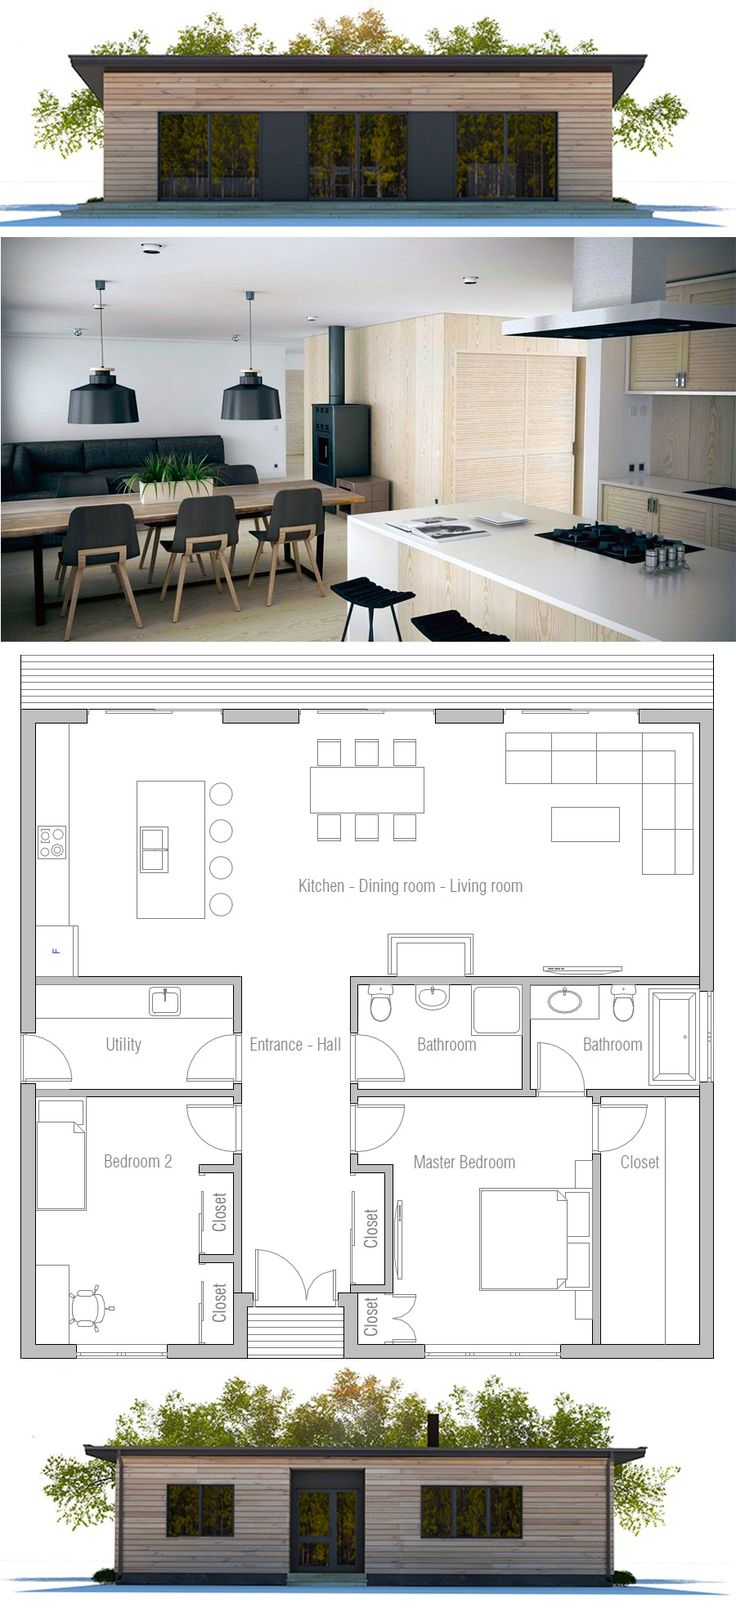 Plan of house with two bedroom